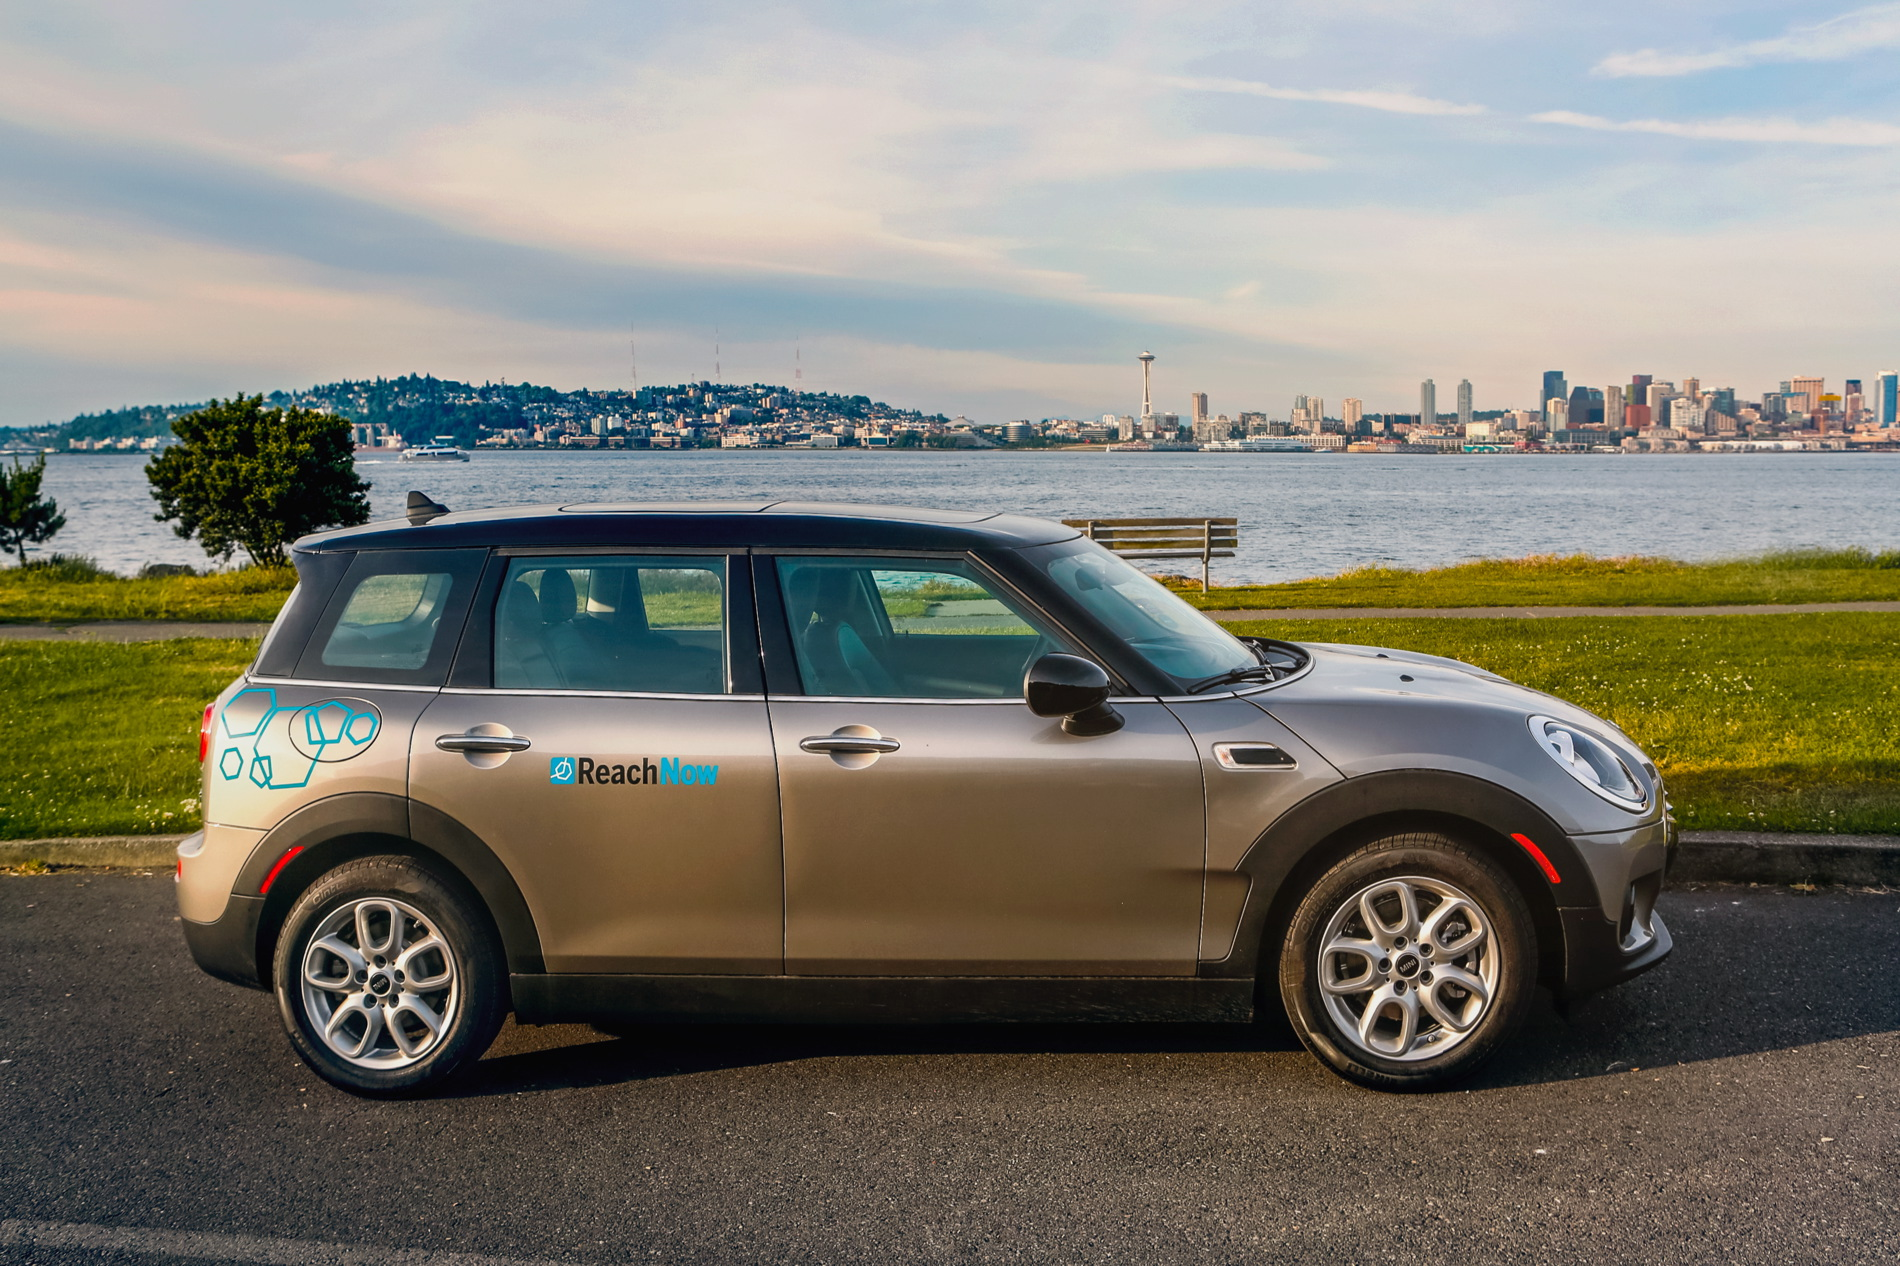 You Can Now Rent Out Your MINI Through ReachNow in Seattle